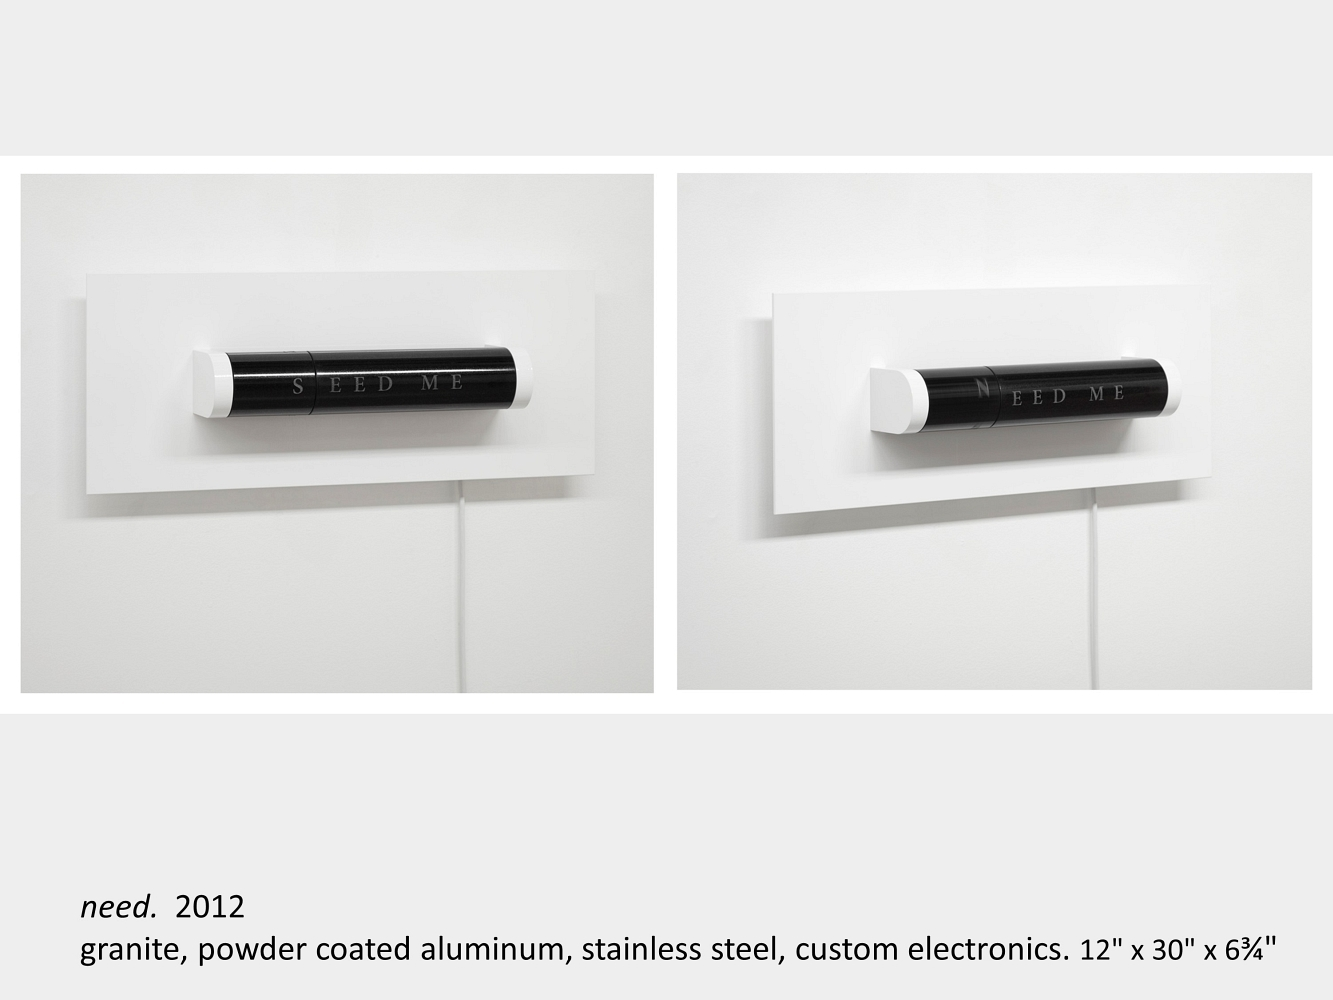 """Artwork by Lois Andison. Need. 2012. granite, powder coated aluminum, stainless steel, custom electronics. 12"""" x 30"""" x 6¾"""""""